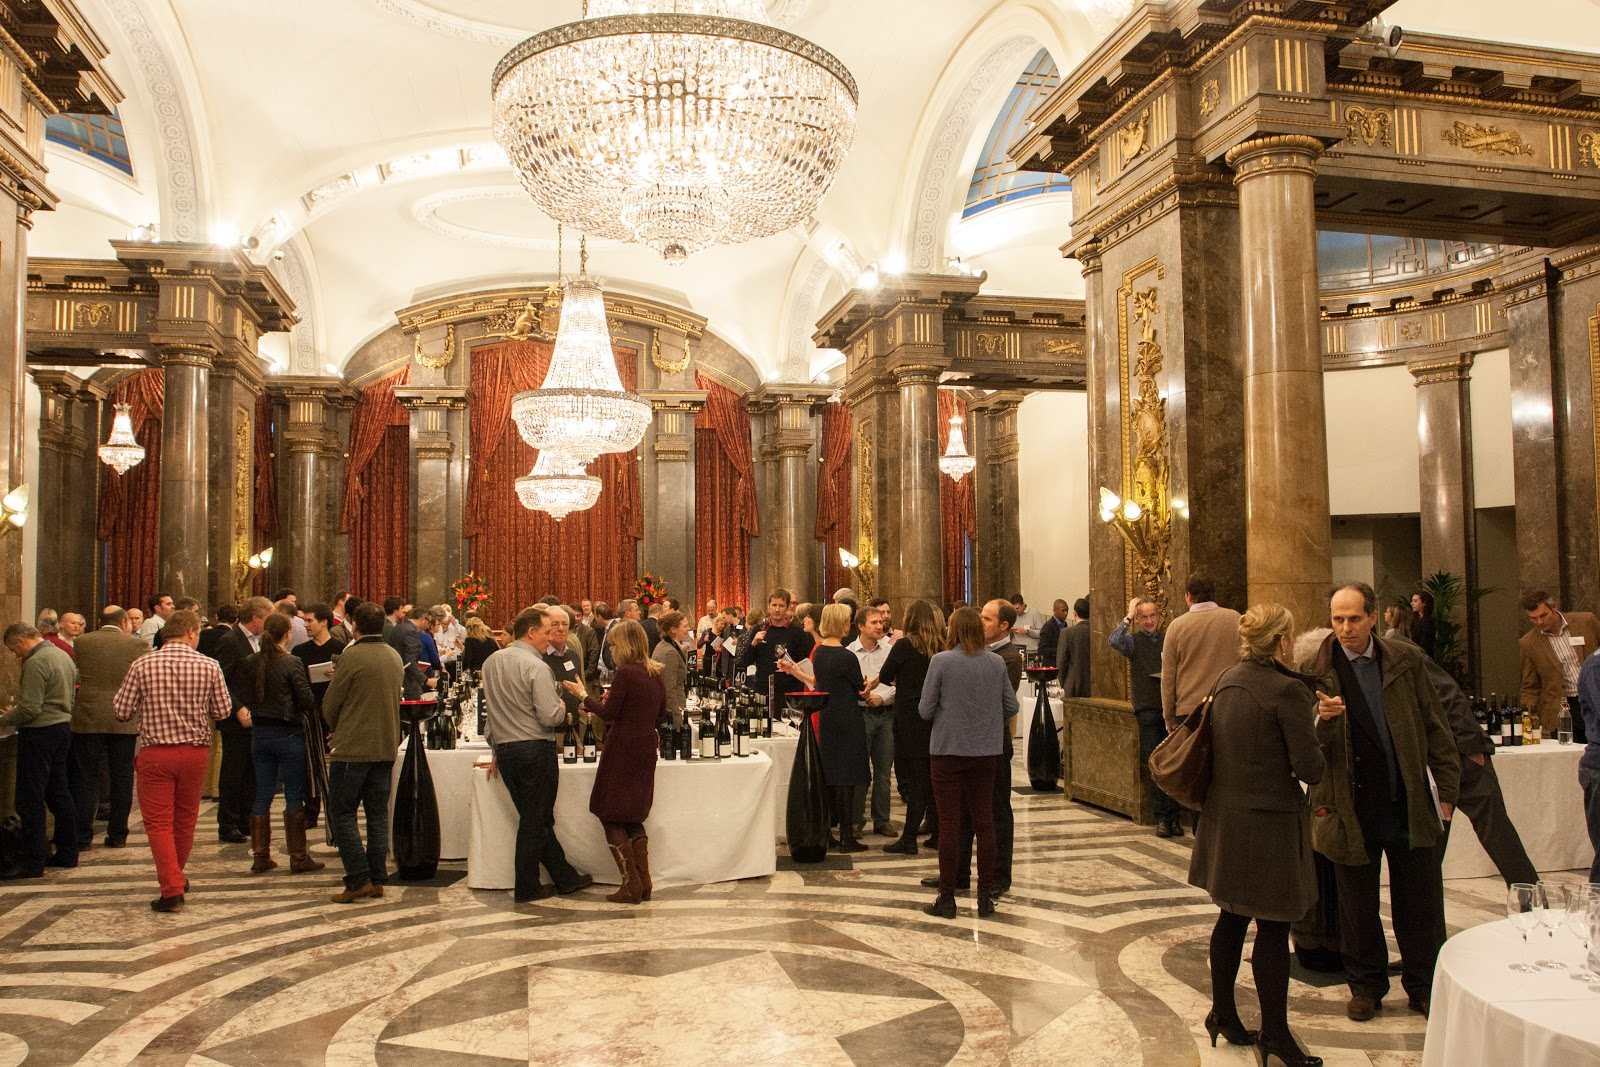 australianwine2013 - 15+ Australia House London Images  Pics